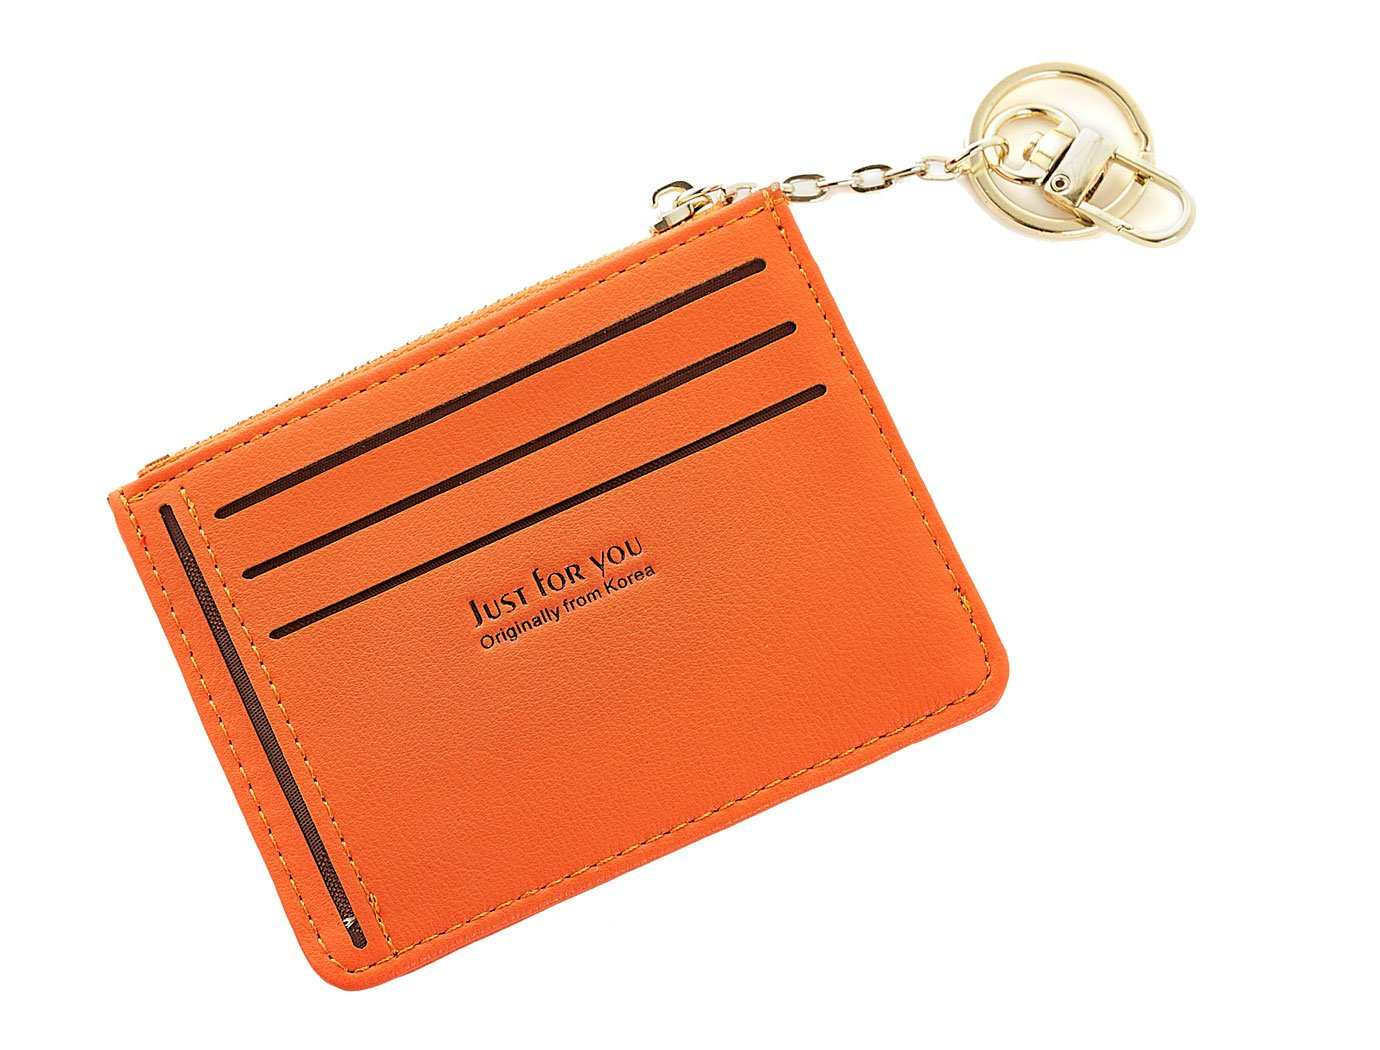 Slim Leather Wallet Credit Card Case Sleeve Bags Holder Mini Purse With ID Window For Cards Coin Keychain Teengirls Orange